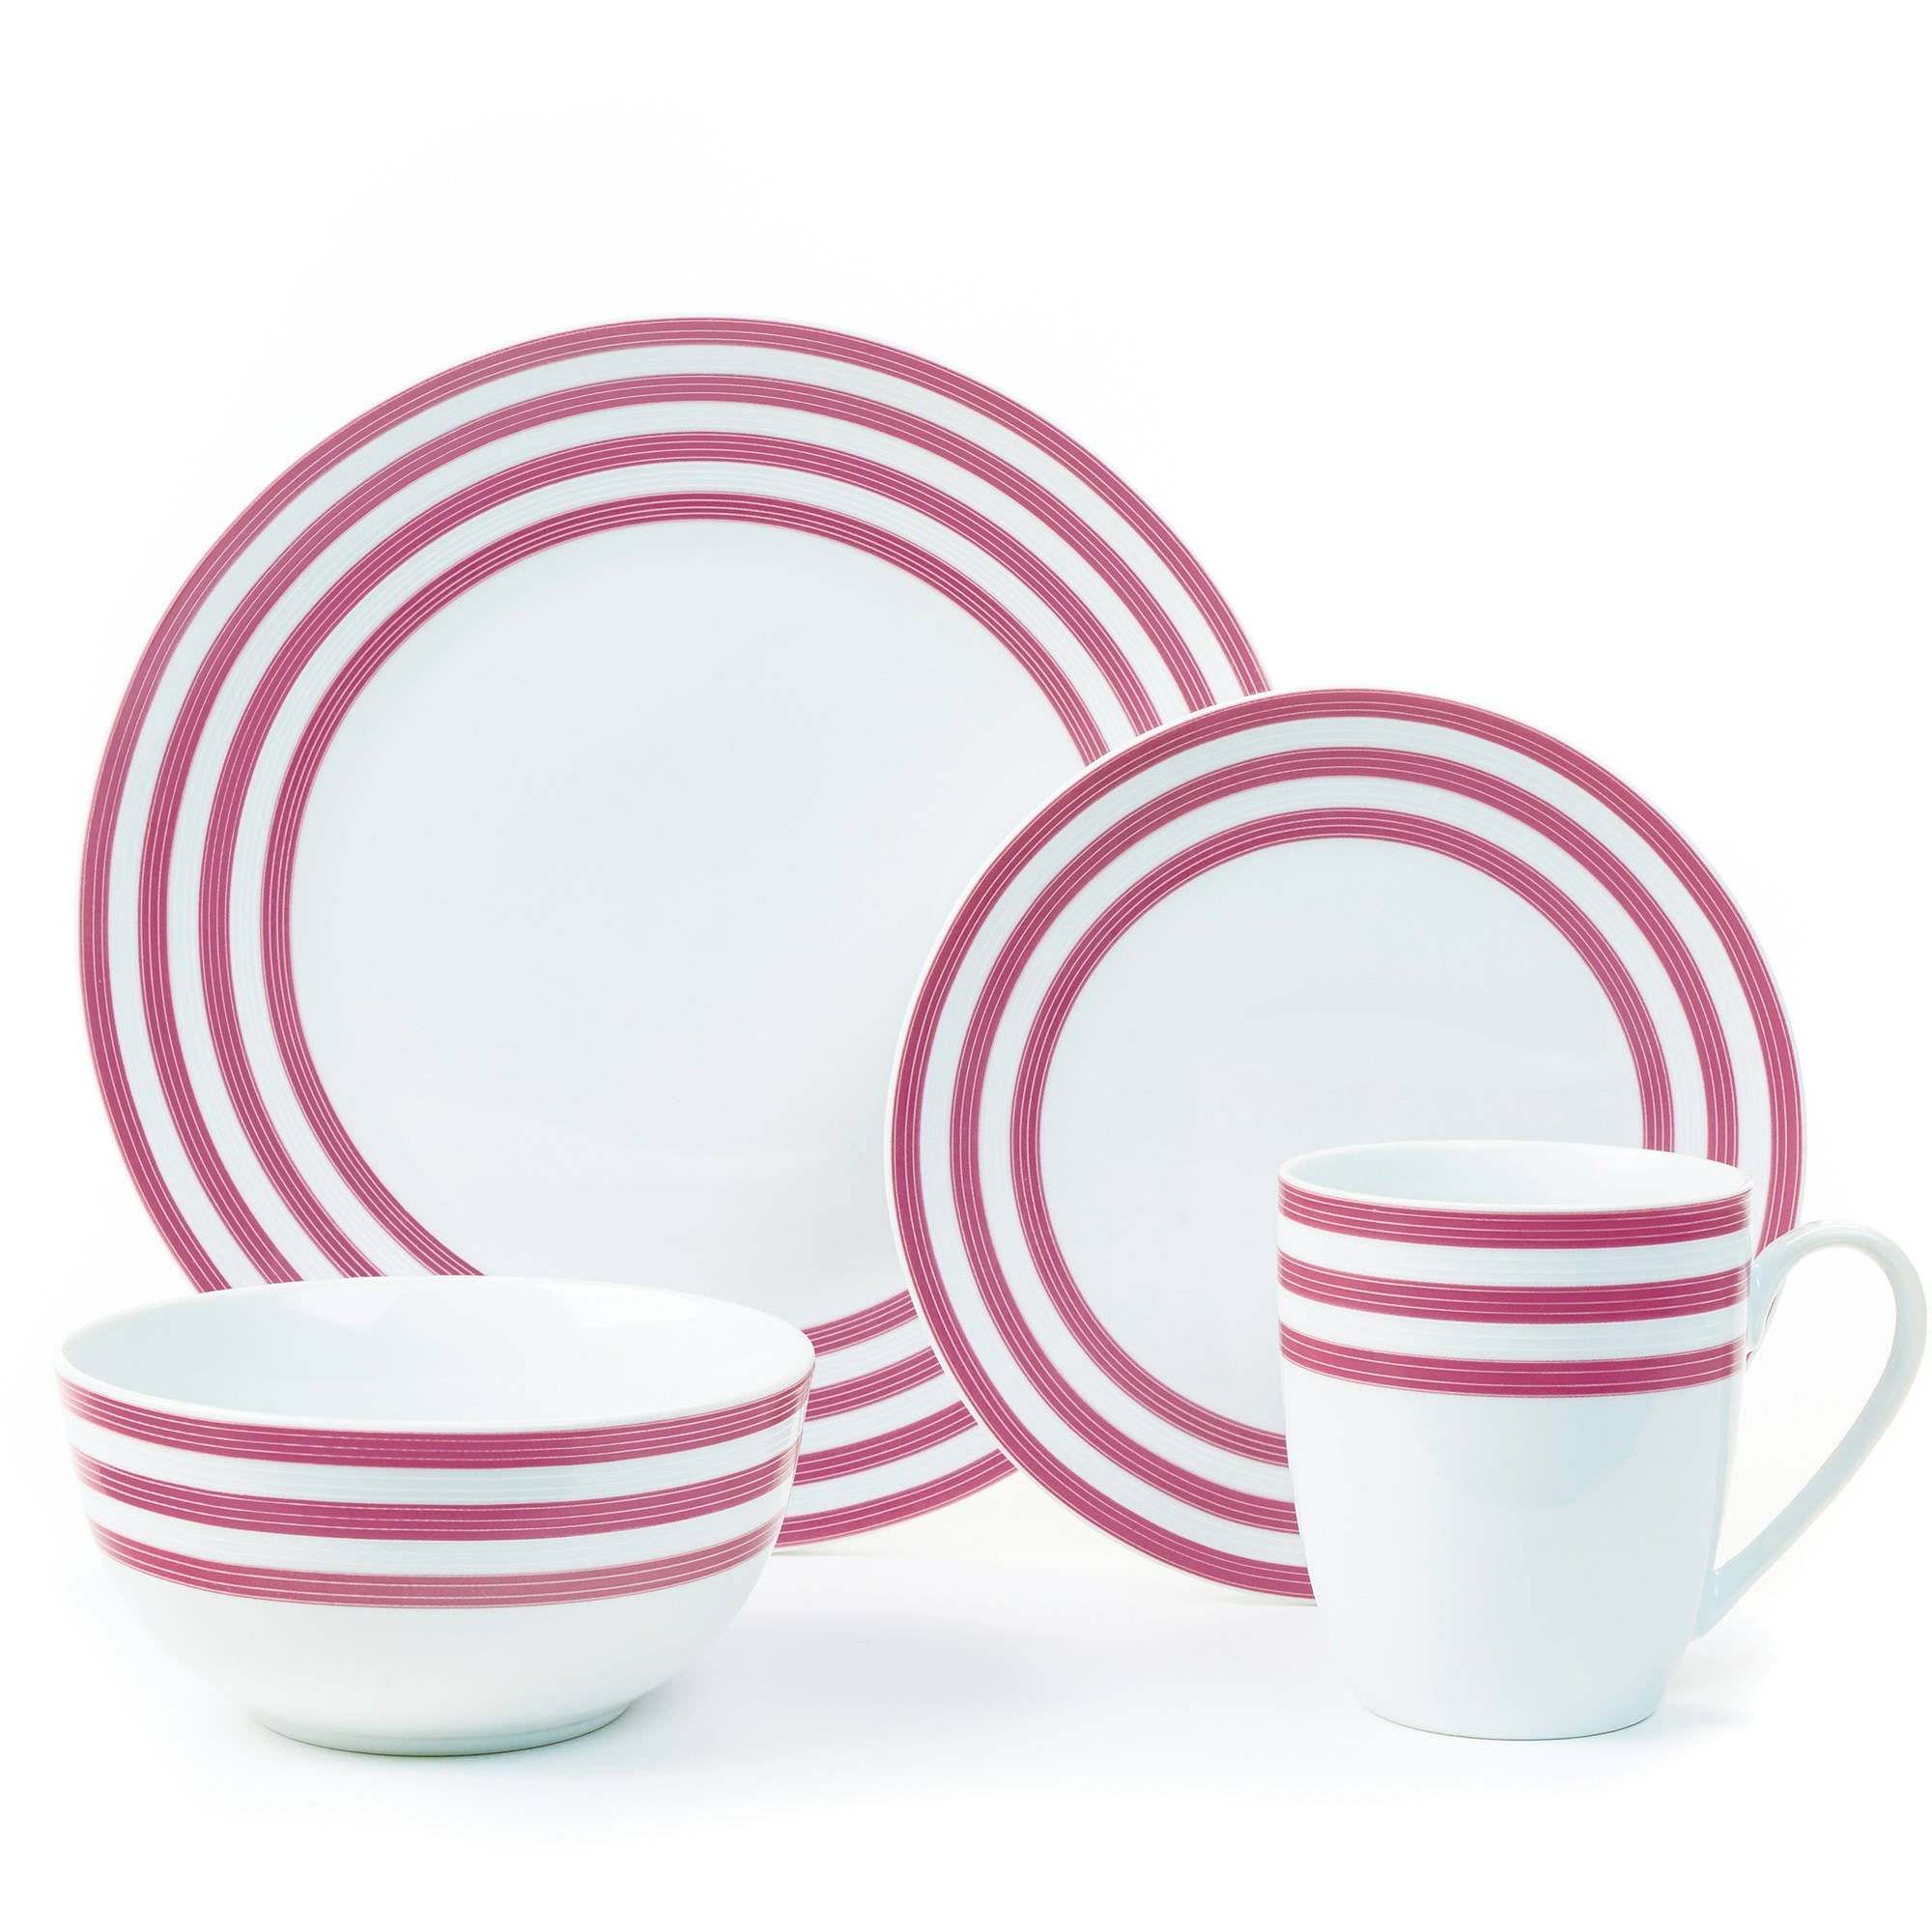 08- red striped porcelain dishes